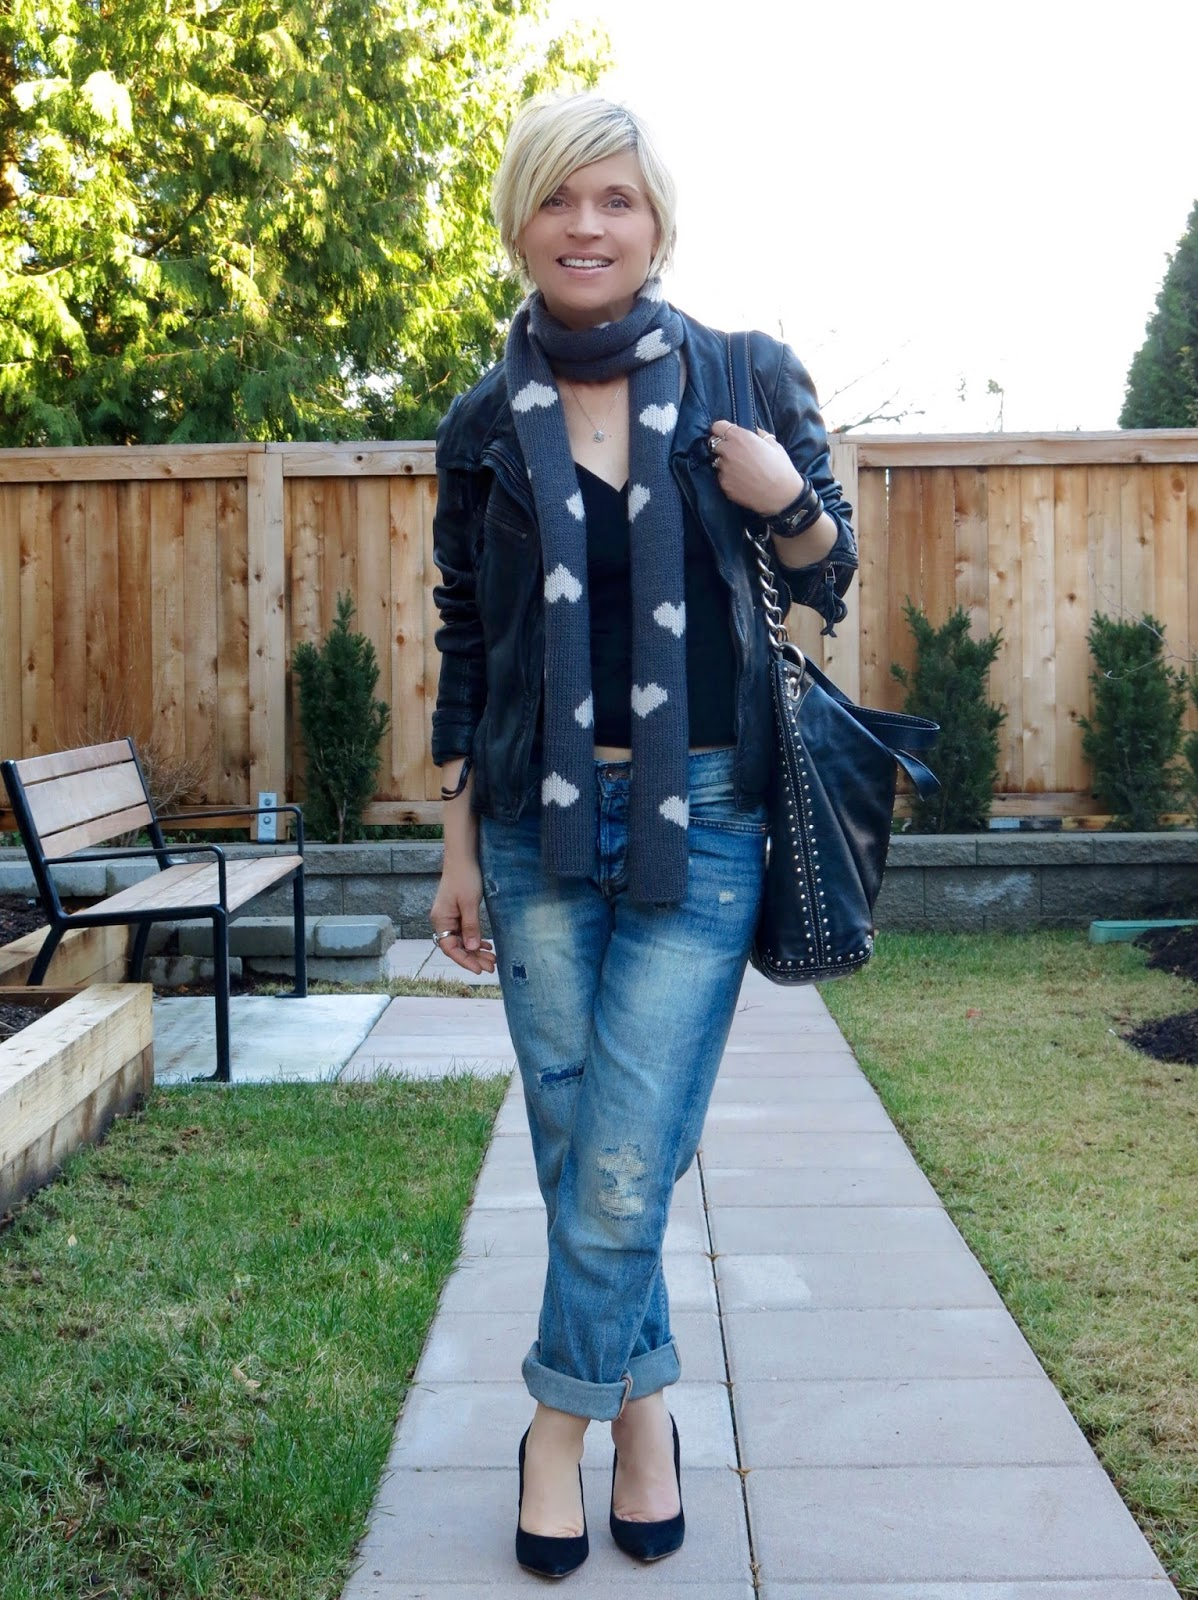 styling boyfriend jeans with a moto jacket, heart-patterned woolen scarf, and black suede pumps